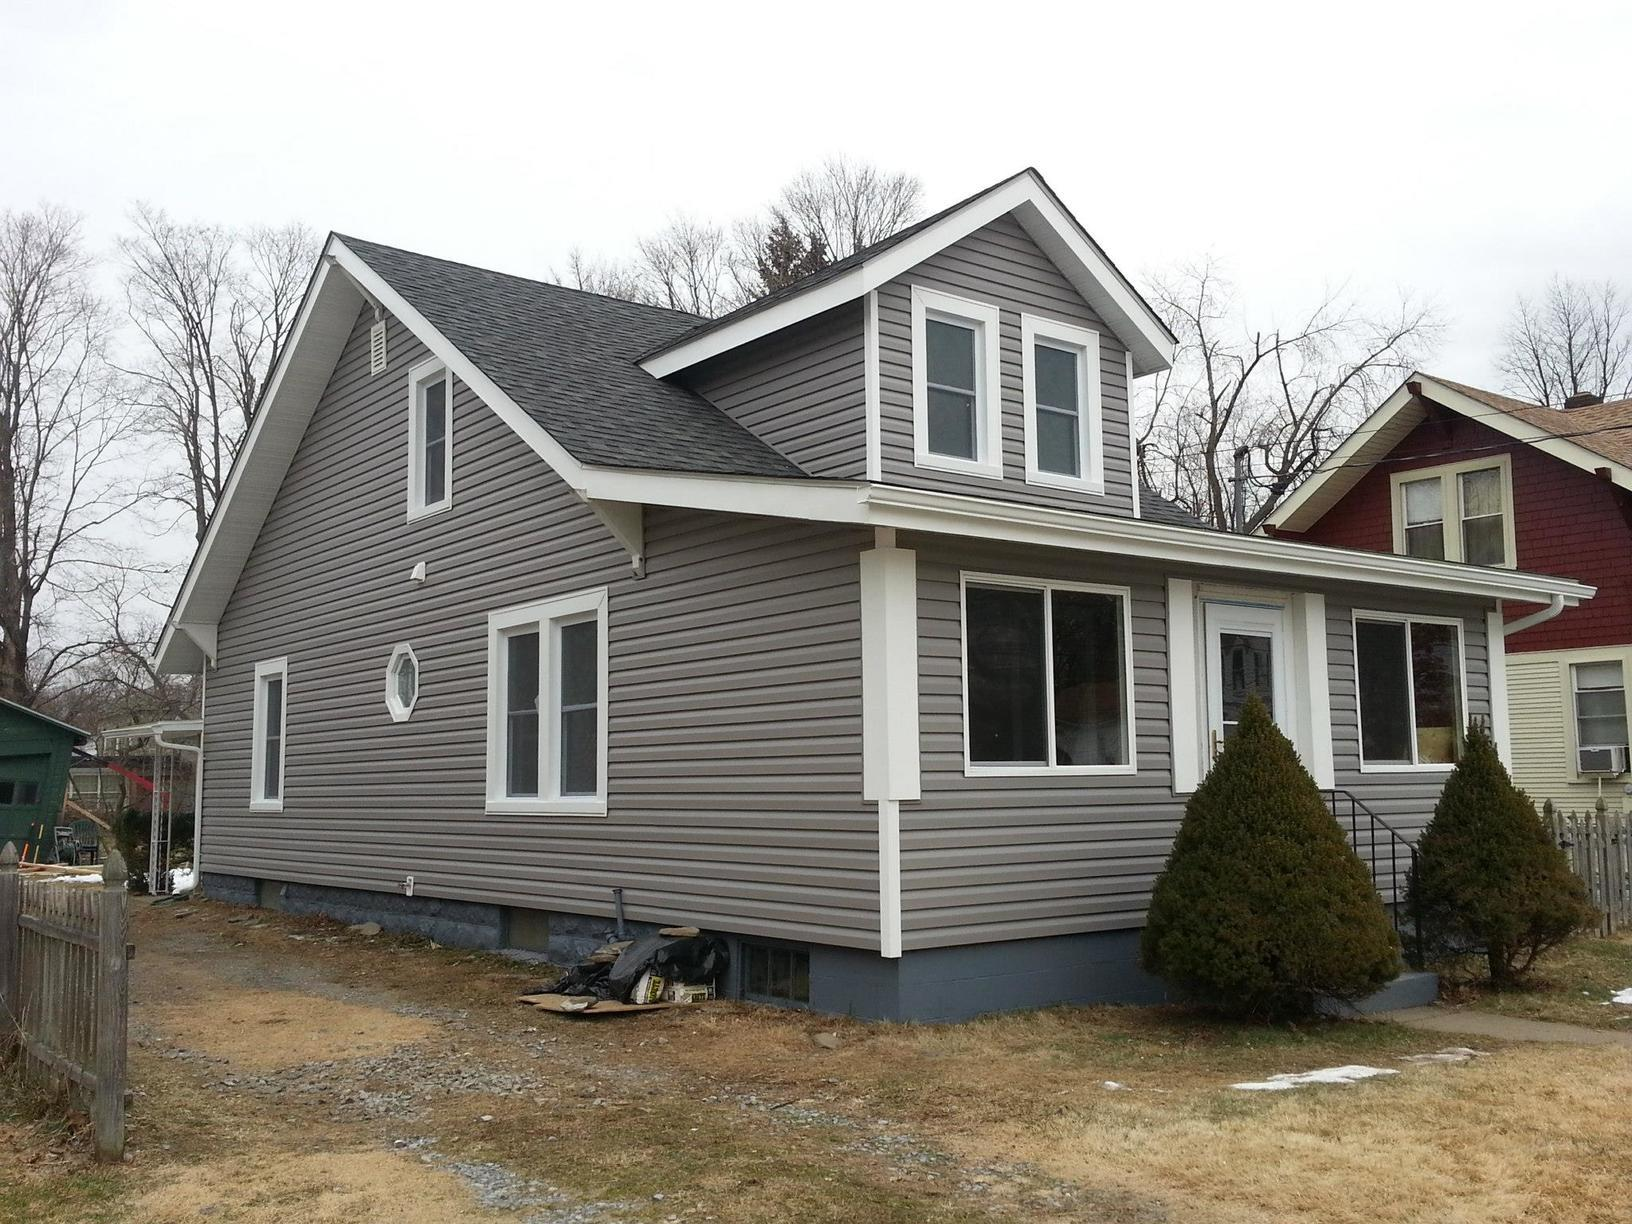 Roof & Siding Install Complted